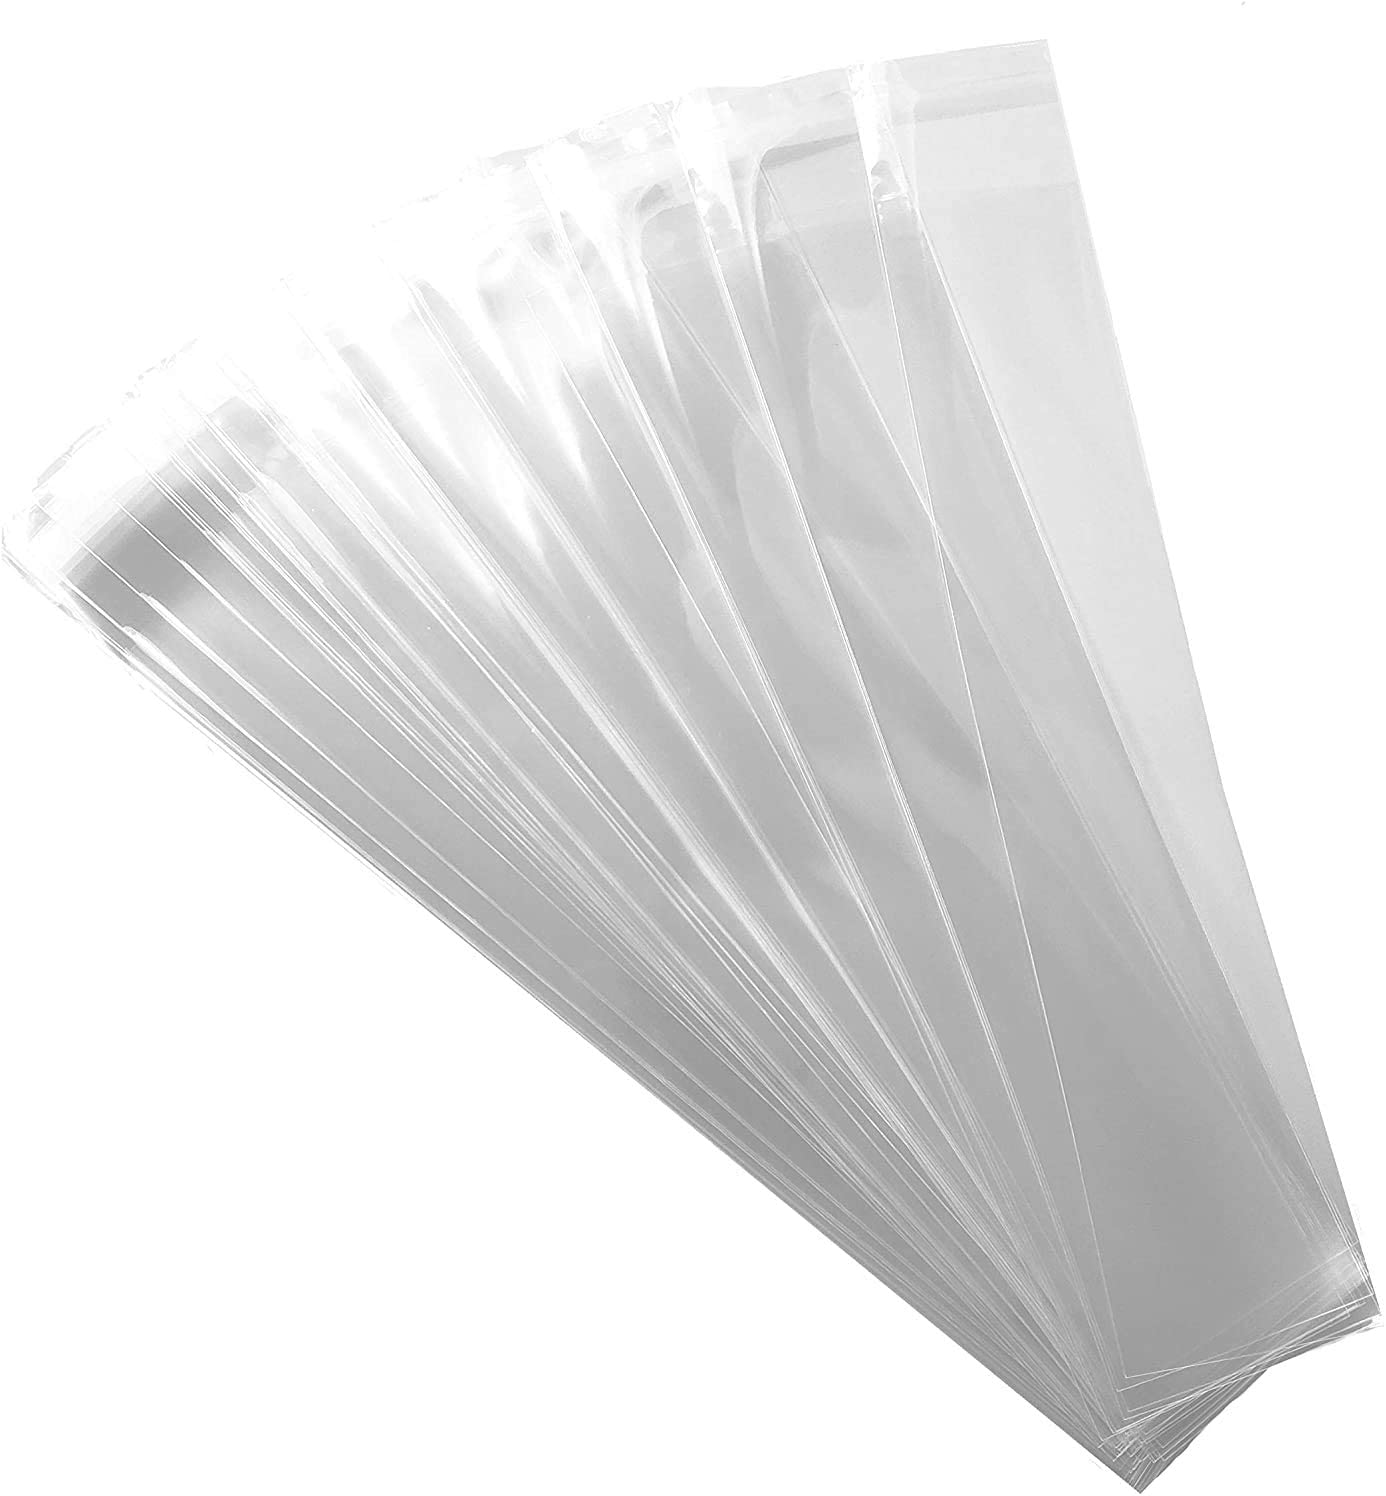 200ct Adhesive Treat Bags 2 x 10 Clear - 1.4 mils Thick Self Sealing OPP Plastic Bags/Clear Flat Resealable Cello (2